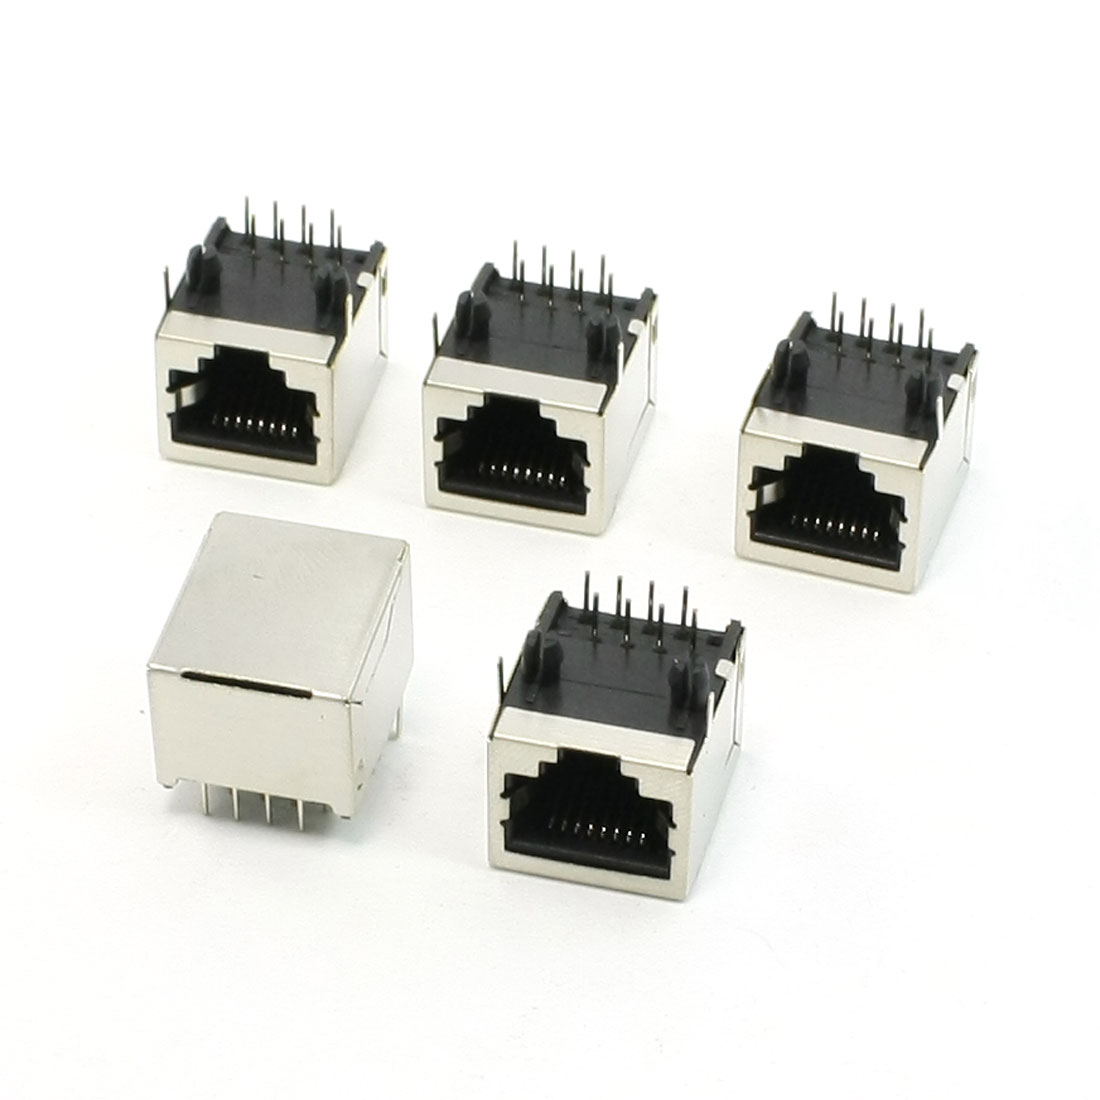 5 Pcs 8P8C RJ45 Network PCB Jack Horizontal Mounting Connector